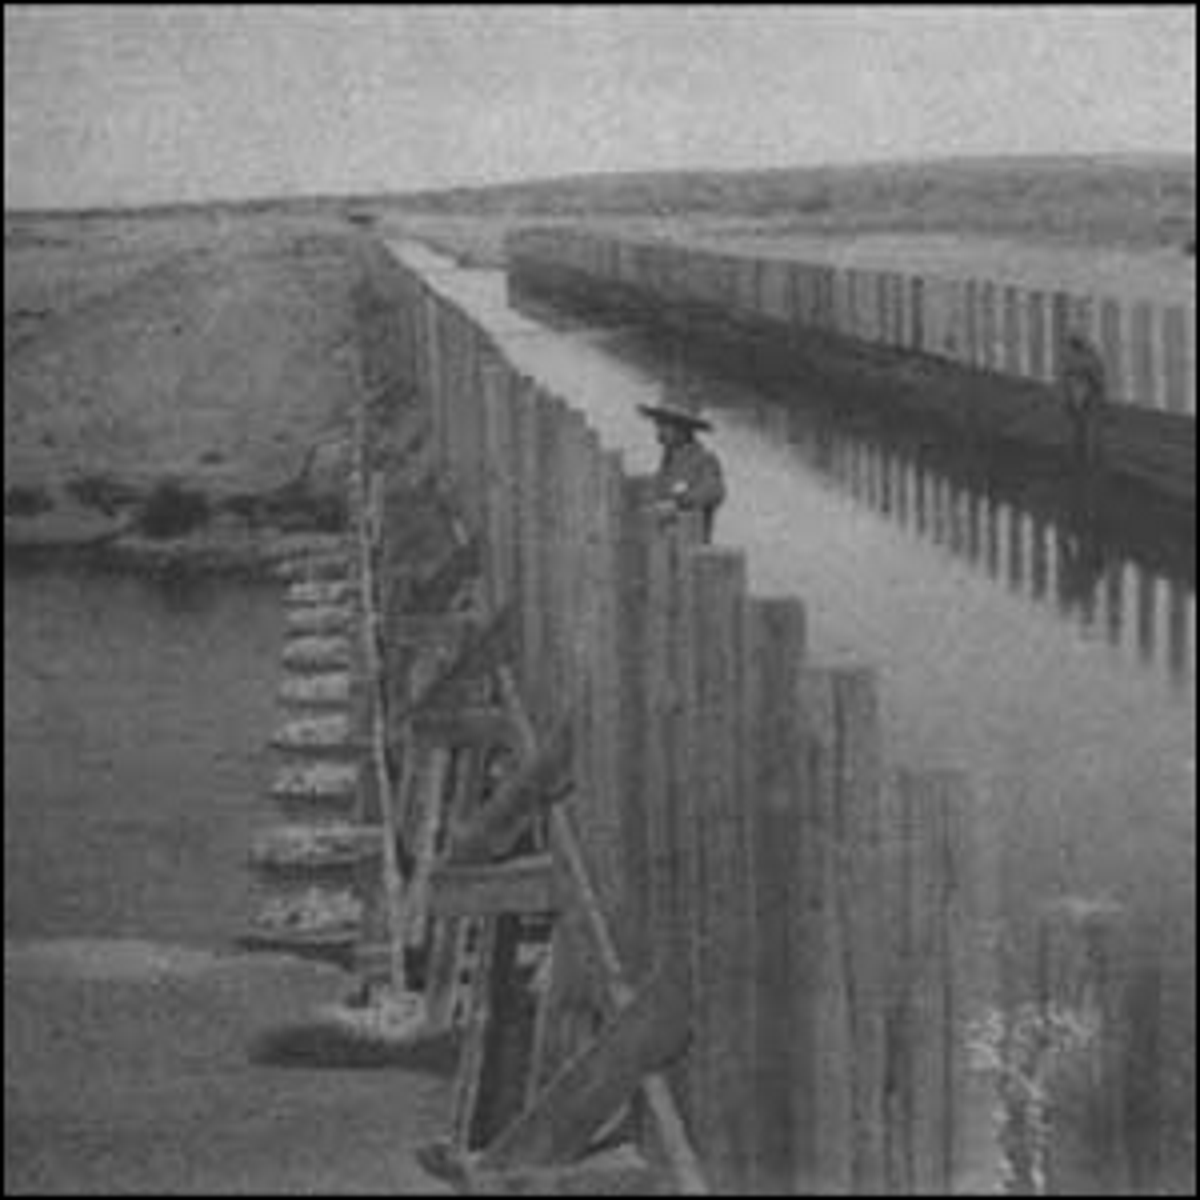 The Pecos River flume diverting irrigation water over the Pecos River in 1903.